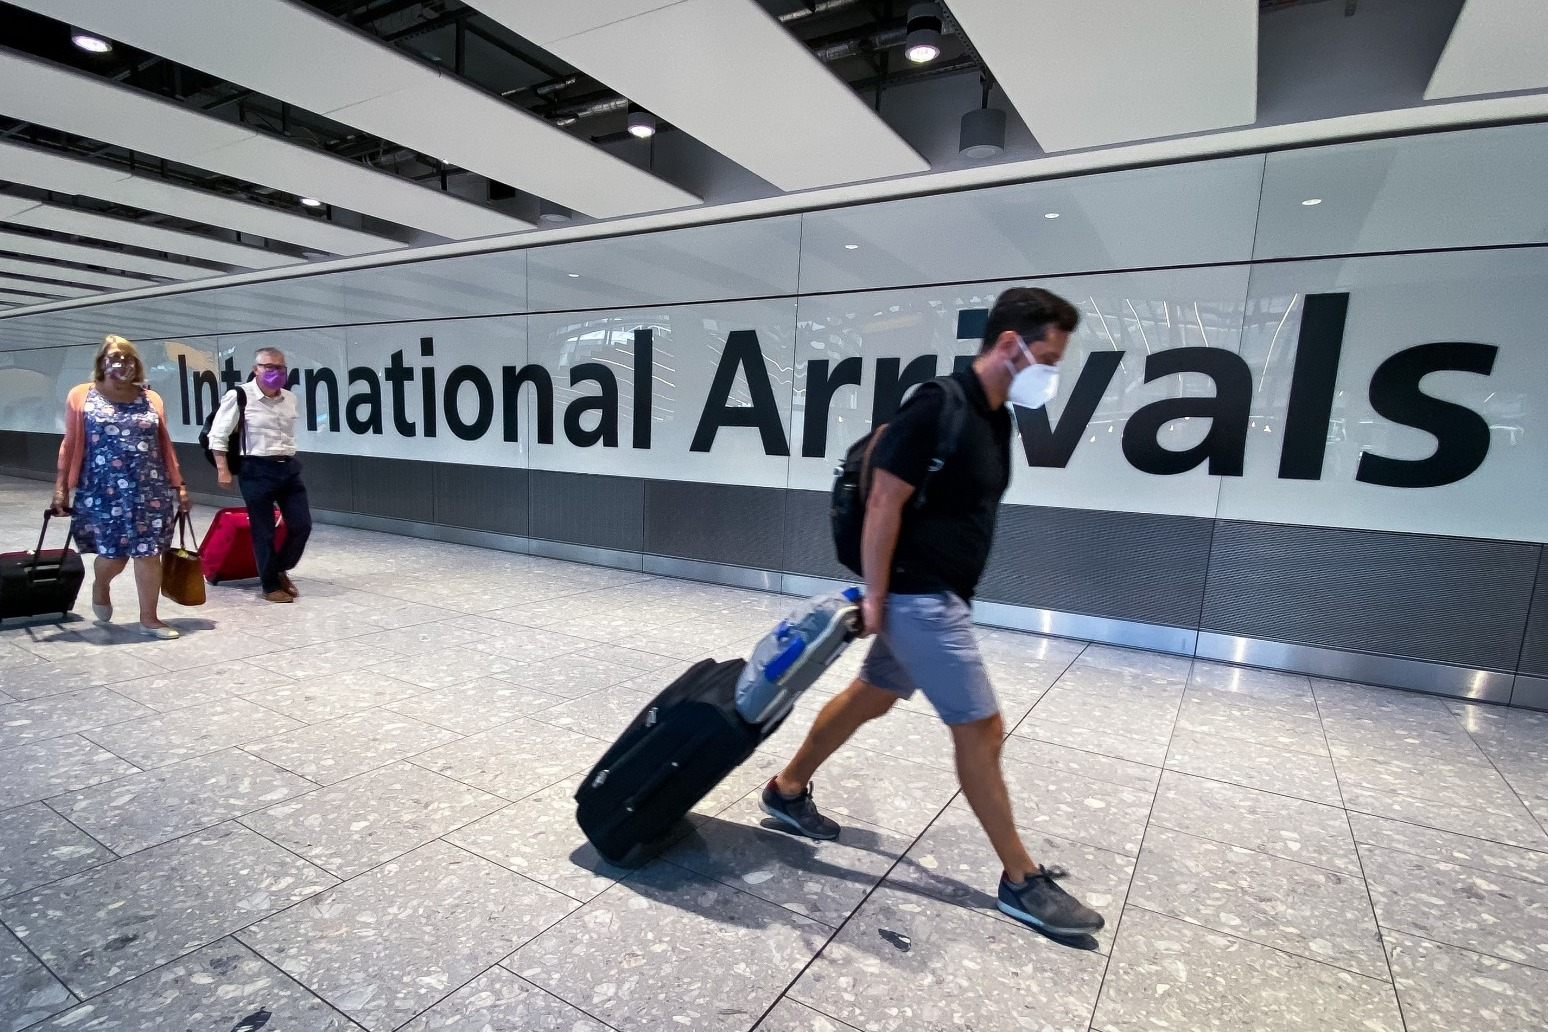 Heathrow passenger numbers remain almost 90% down on pre-pandemic levels